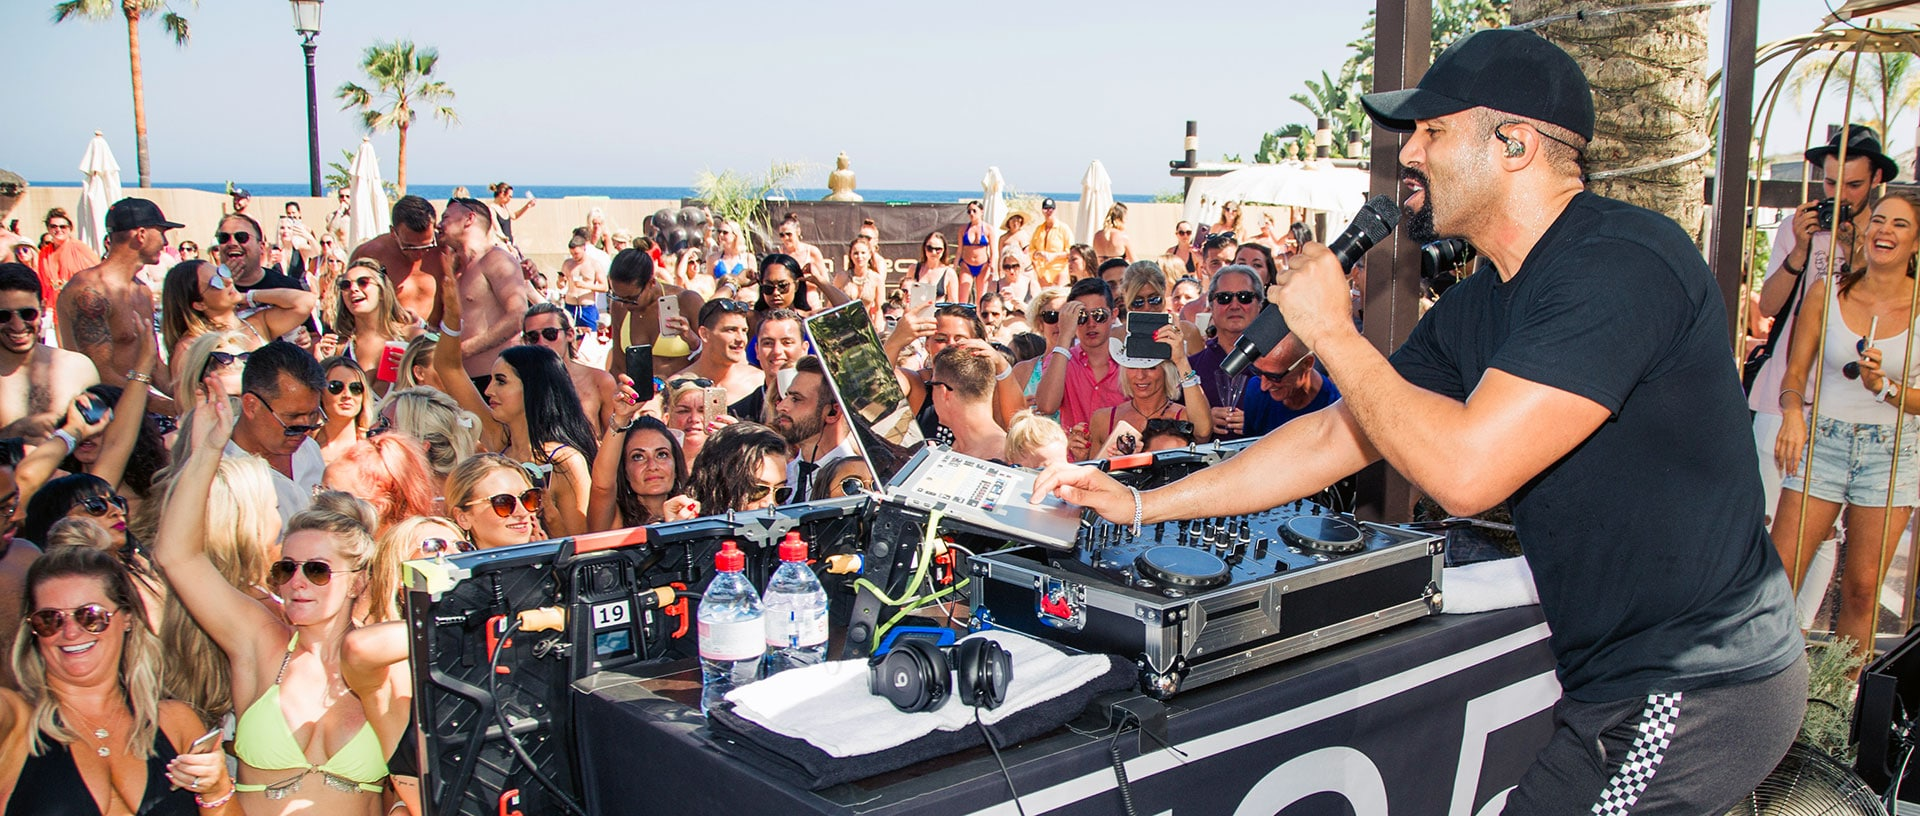 Marbella beach club events 2019 at La Sala by the Sea